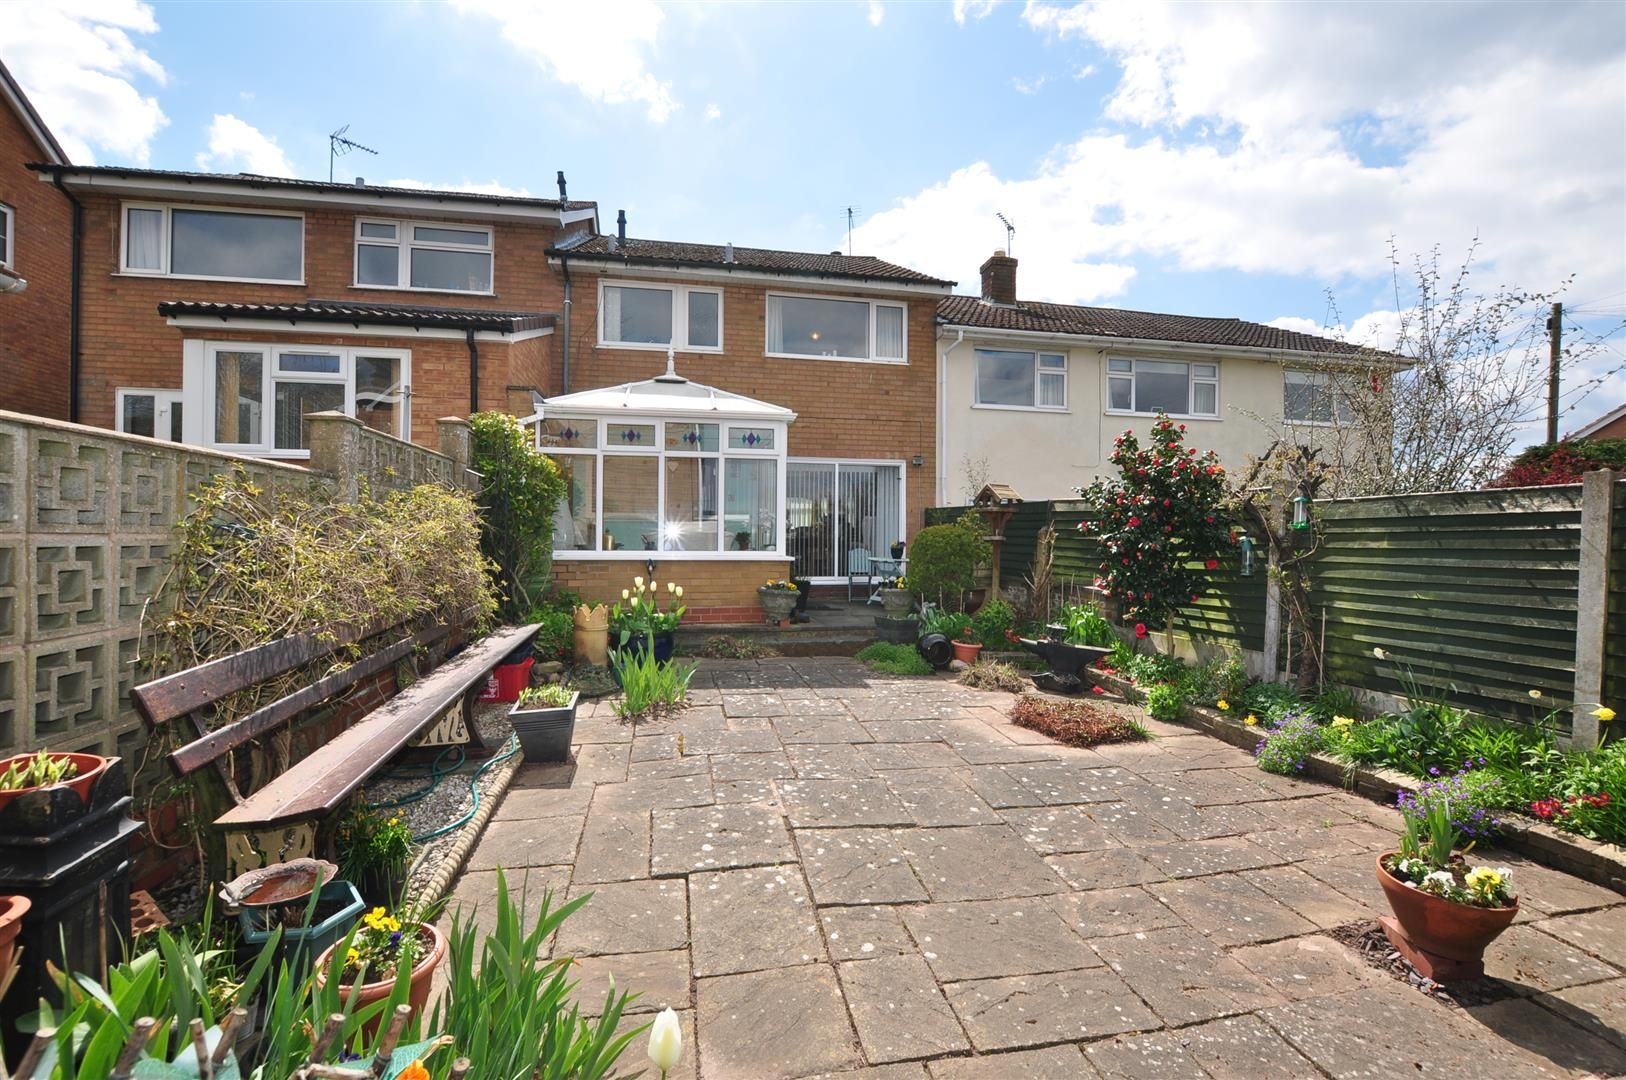 3 bed house for sale in Hagley 14